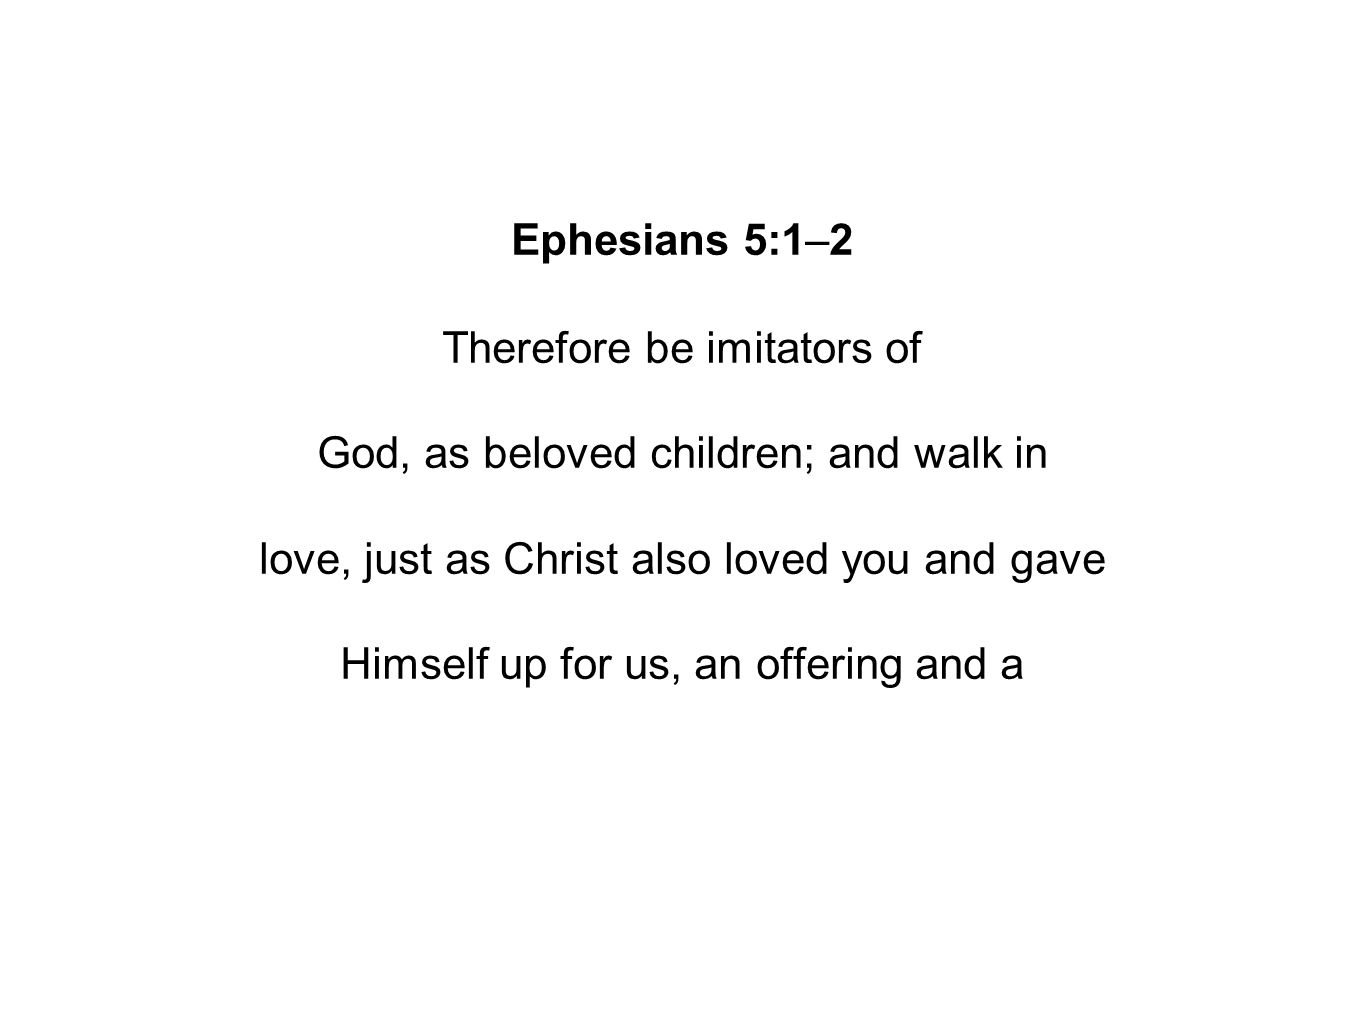 Ephesians 5:1–2 Therefore be imitators of God, as beloved children; and walk in love, just as Christ also loved you and gave Himself up for us, an offering and a